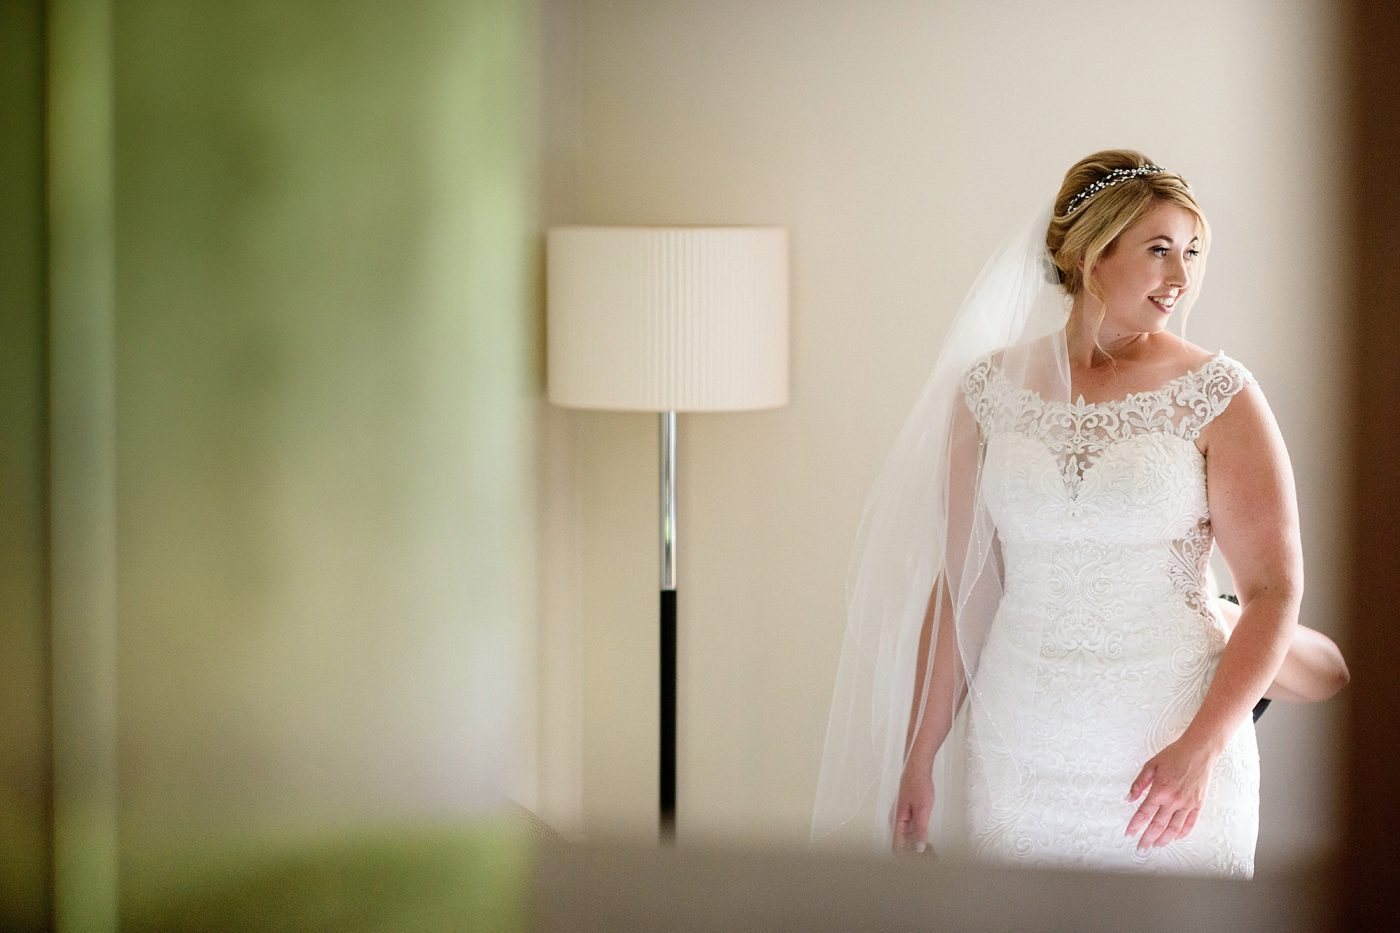 bride looking in the mirror before the wedding